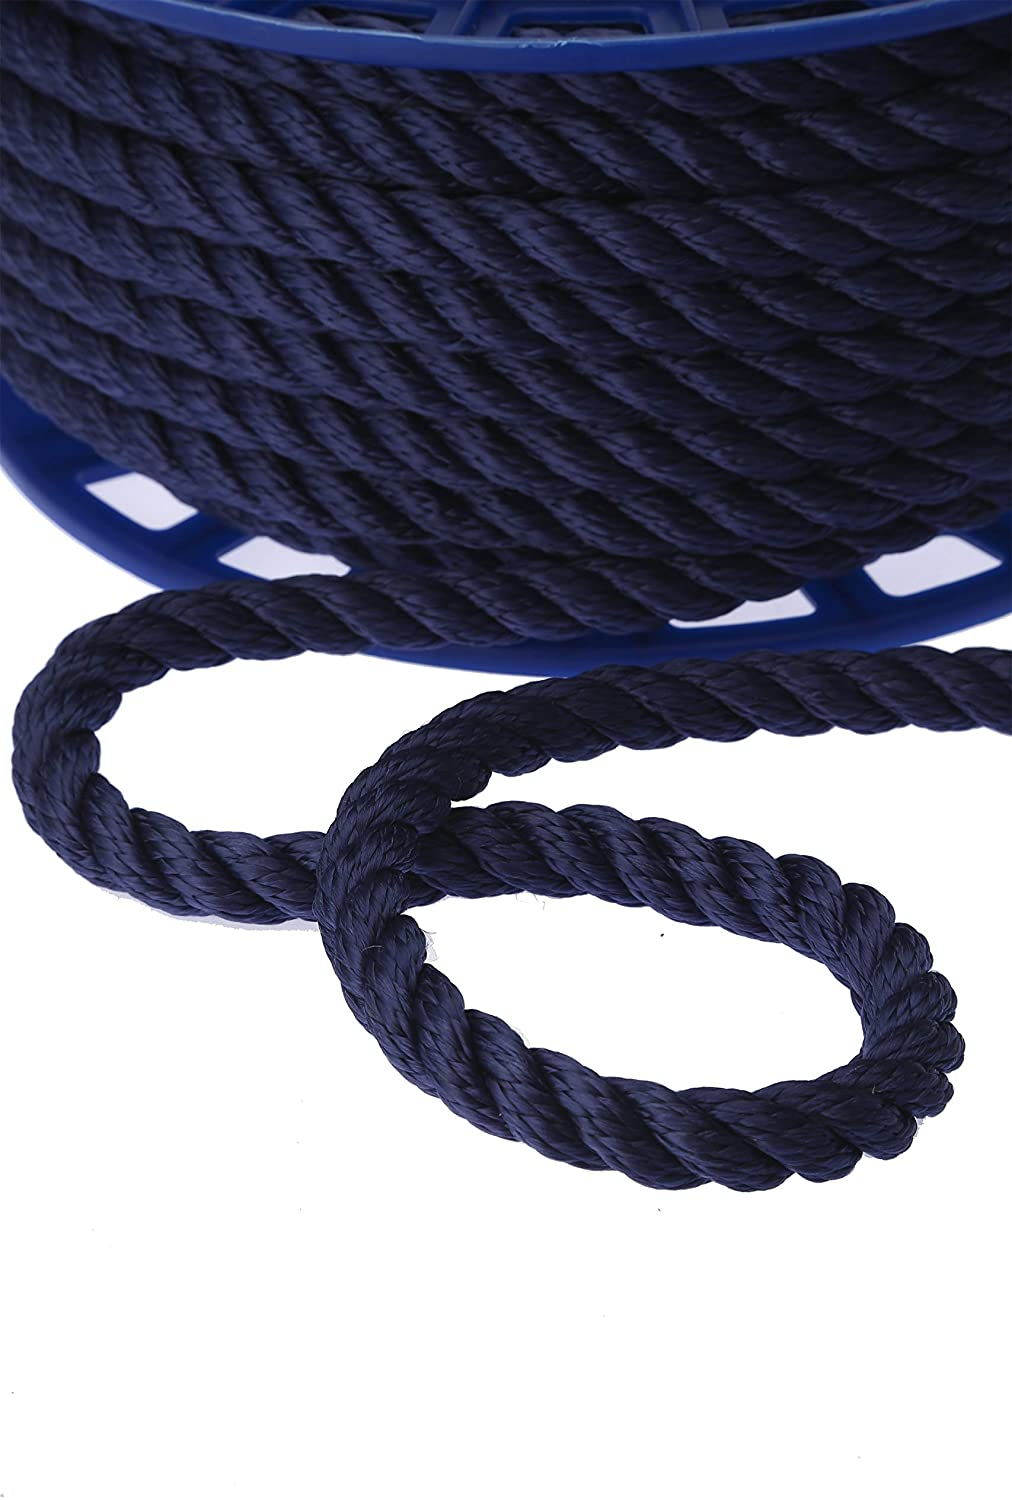 KALYON Premium Quality 3 Strands 12MM (1/2'' 45ft') Floating Polypropylene Rope - Made in Turkey - Marine Rope, All Sizes